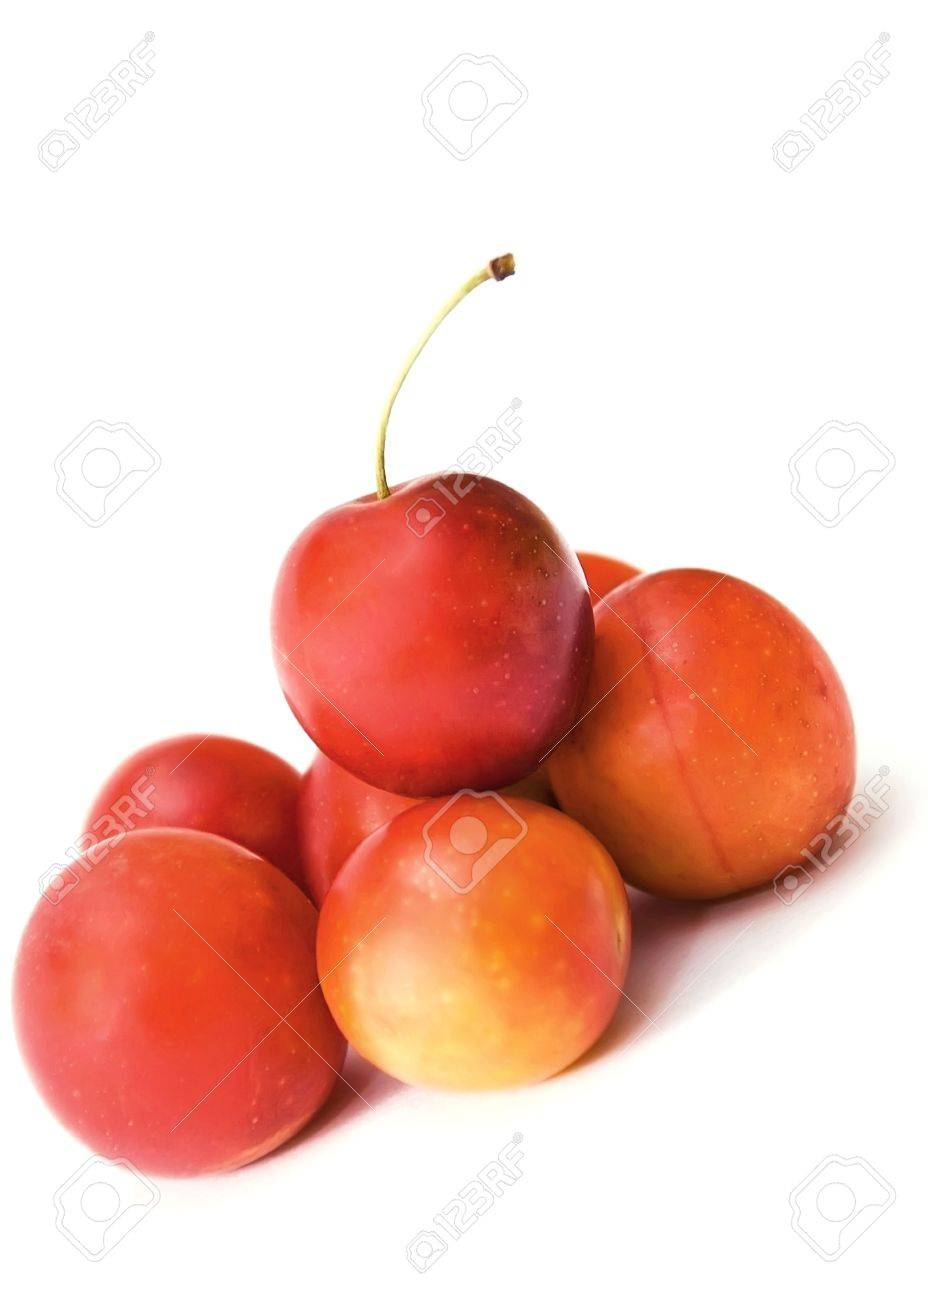 small plum  cherry red delicious nga stark white background is blurred como juicy fresh healthy food tasty and a little more Stock Photo - 5414823